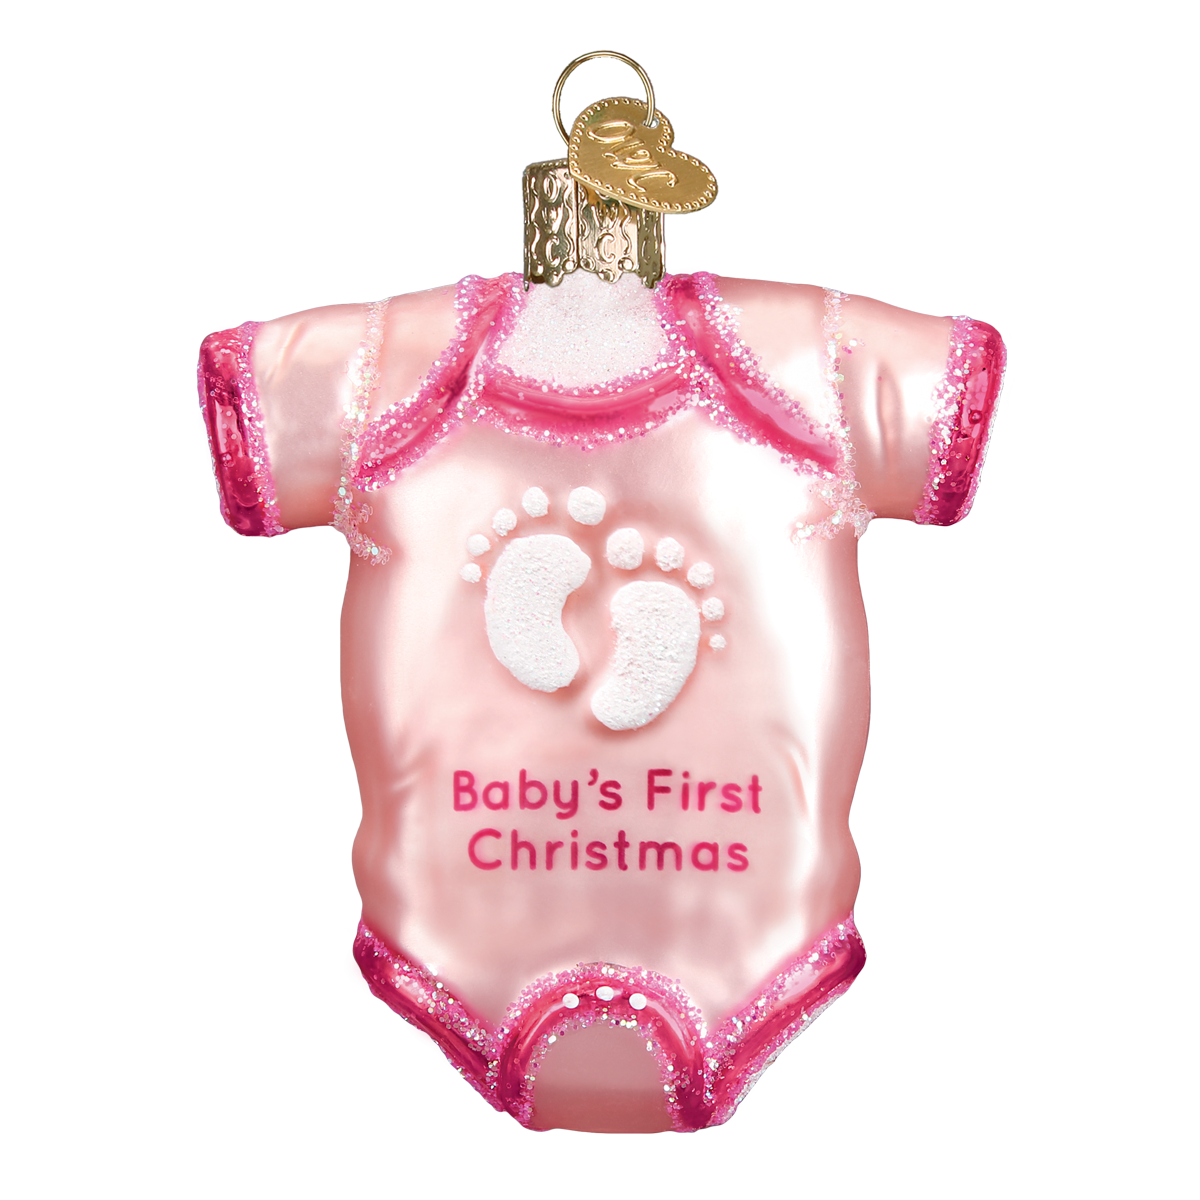 babys first christmas onesie glass ornament pink